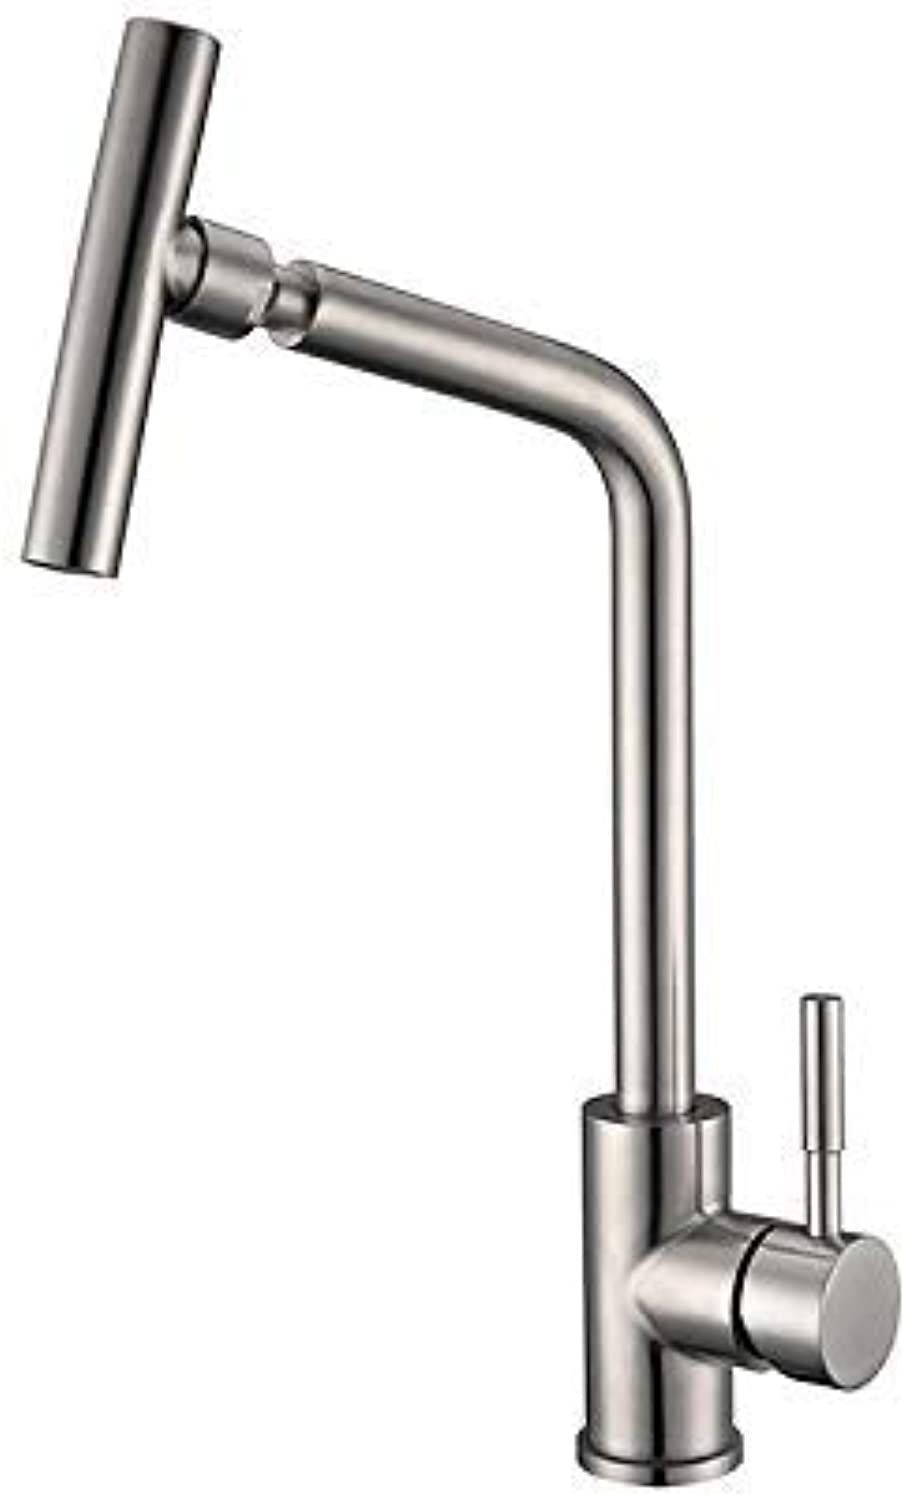 Oudan Lead Sus304 Stainless Kitchen Faucet Mixing Hot and Cold Water Faucet Lavatory (color   -, Size   -)